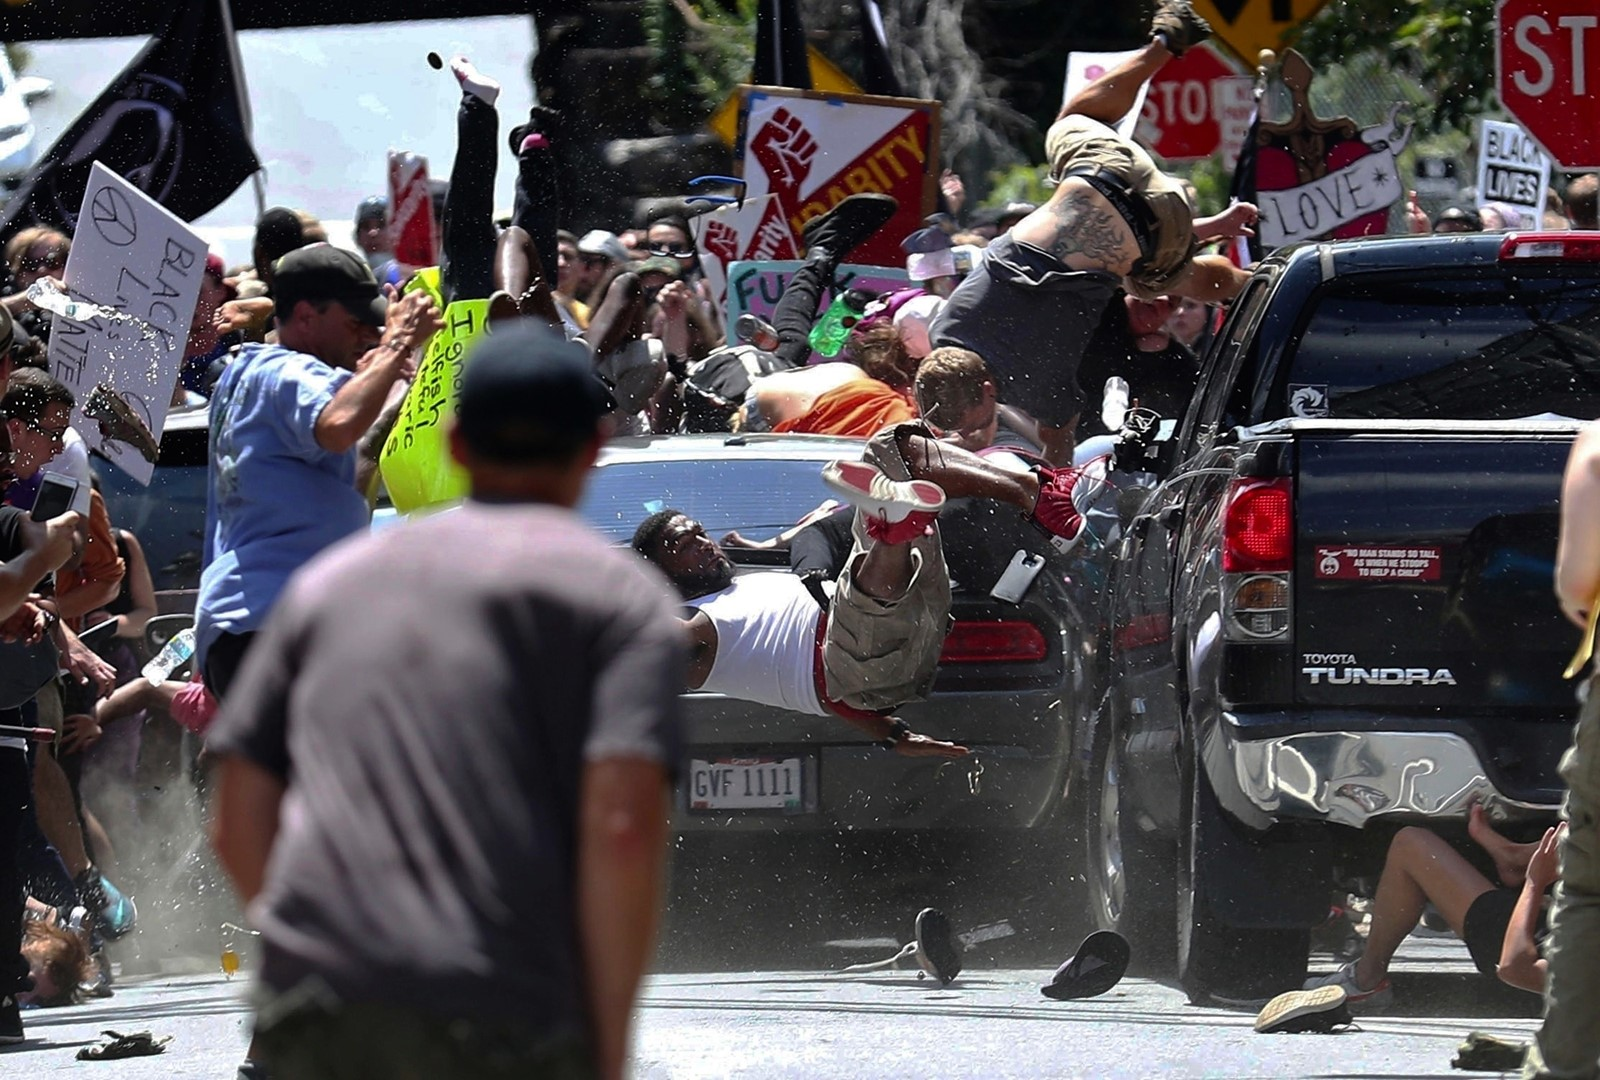 A car driven by James Alex Fields Jr. plows into people protesting a far-right rally in Charlottesville, Virginia, in 2017. Fields was sentenced to life in prison. — Photograph: Ryan M. Kelly/Daily Progress.